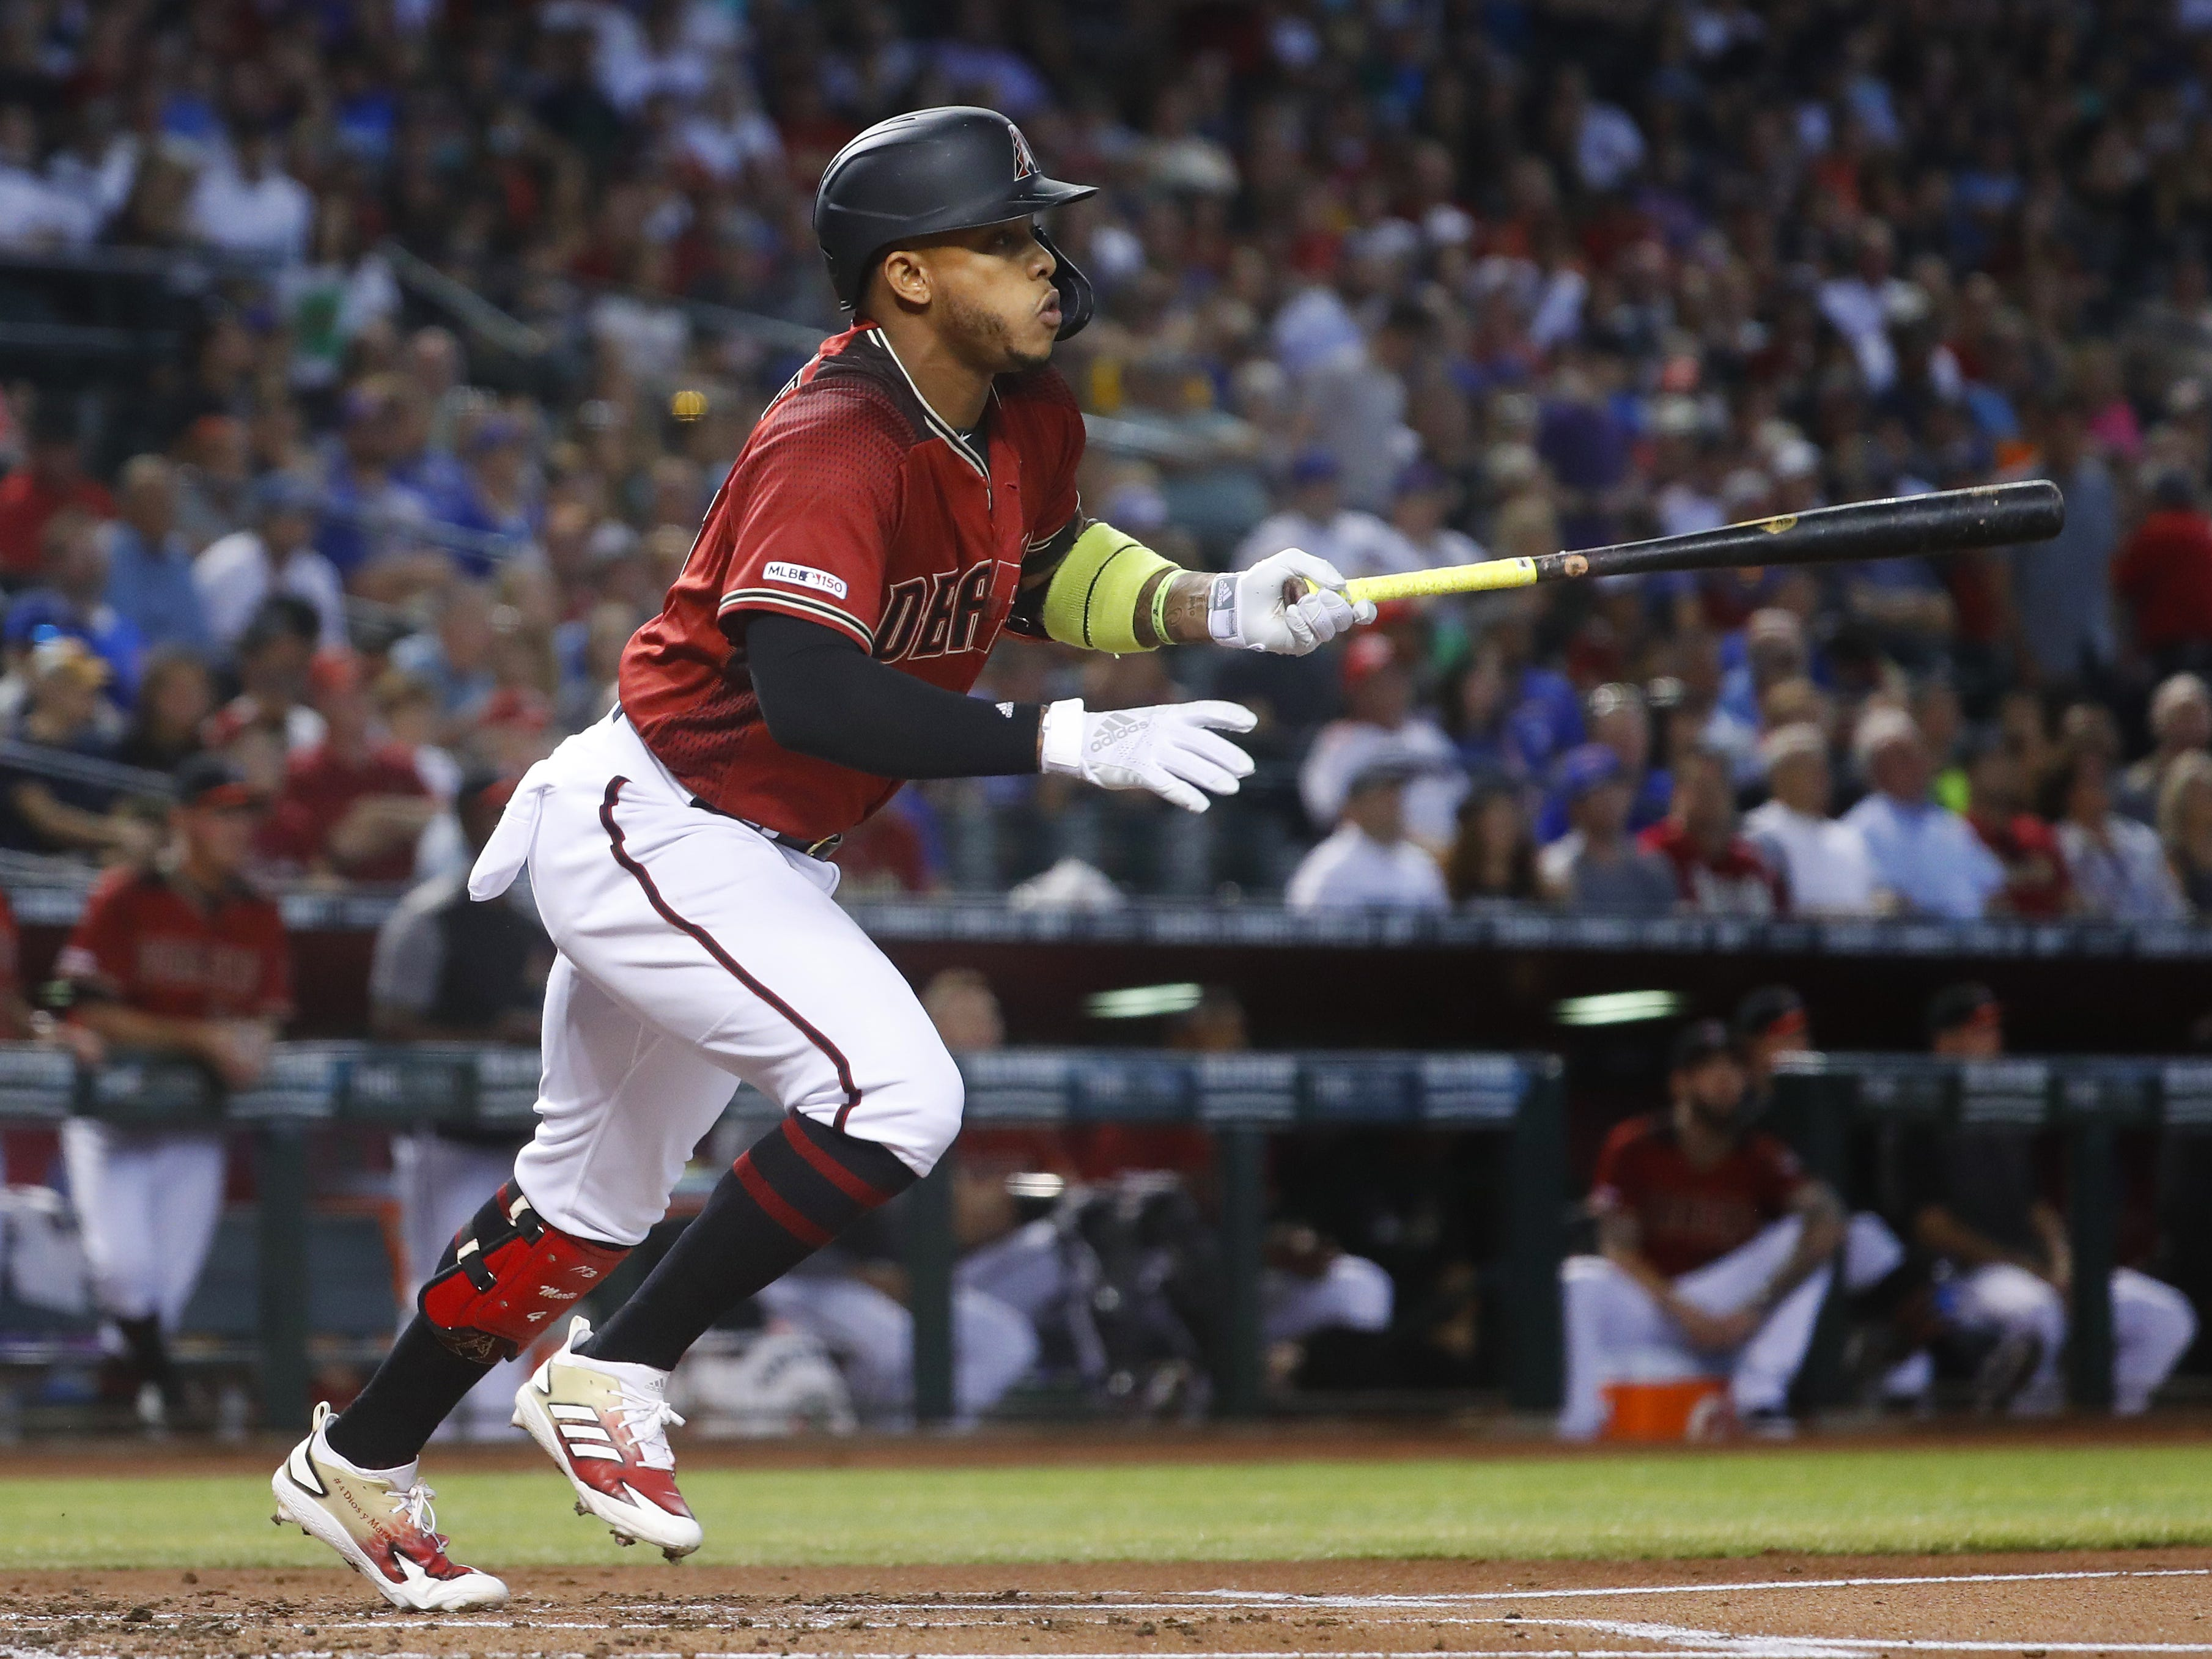 Diamondbacks' Ketel Marte (4) runs out of the batters' box against the Cubs during the first inning at Chase Field in Phoenix, Ariz. on April 28, 2019.